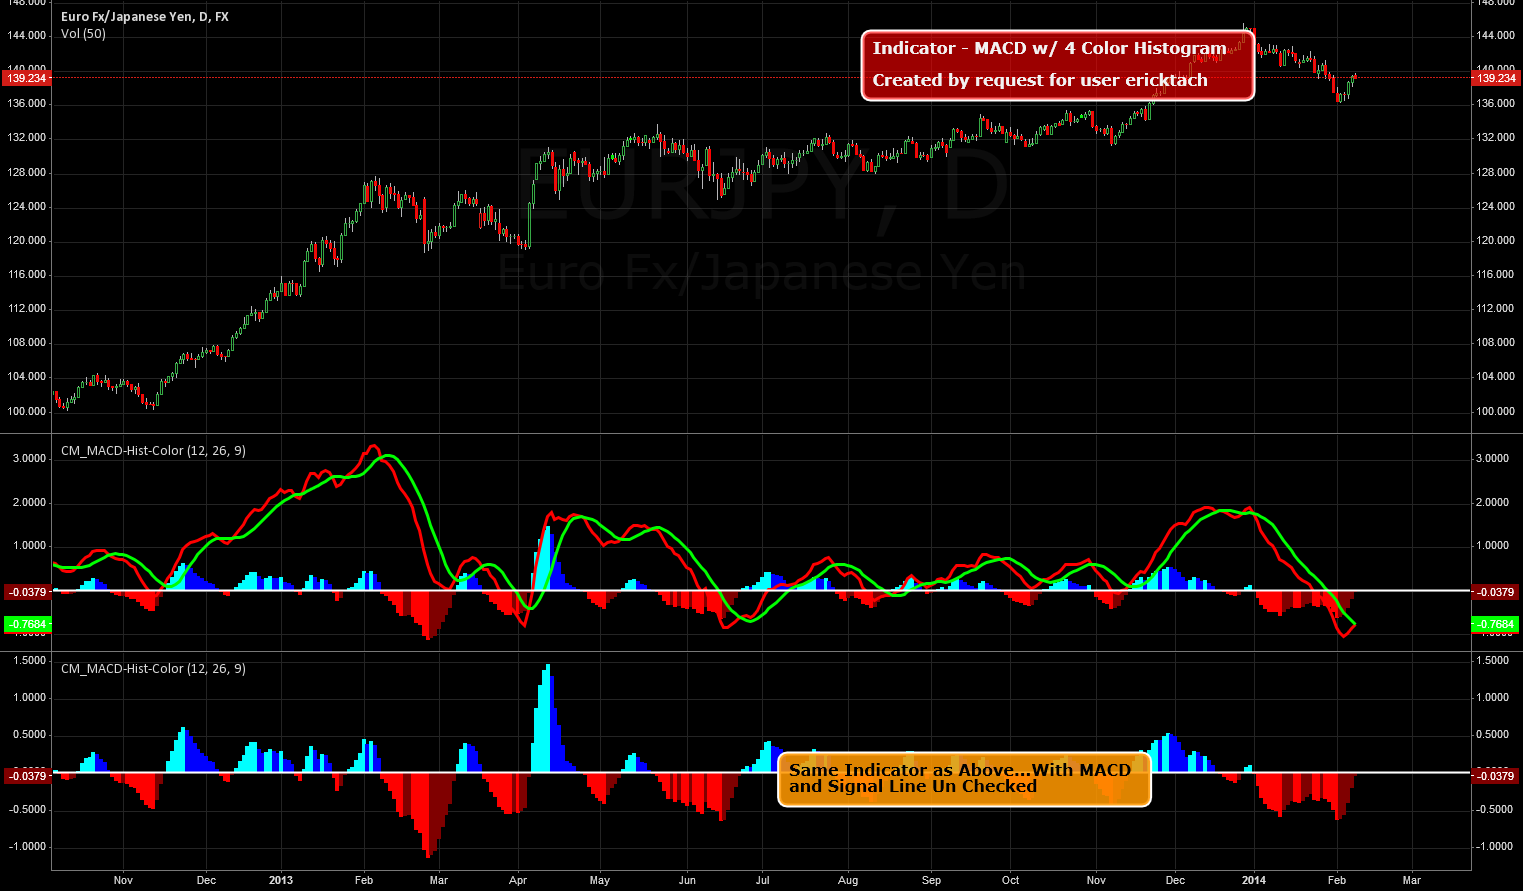 Indicator - MACD w/ 4 Color Histogram